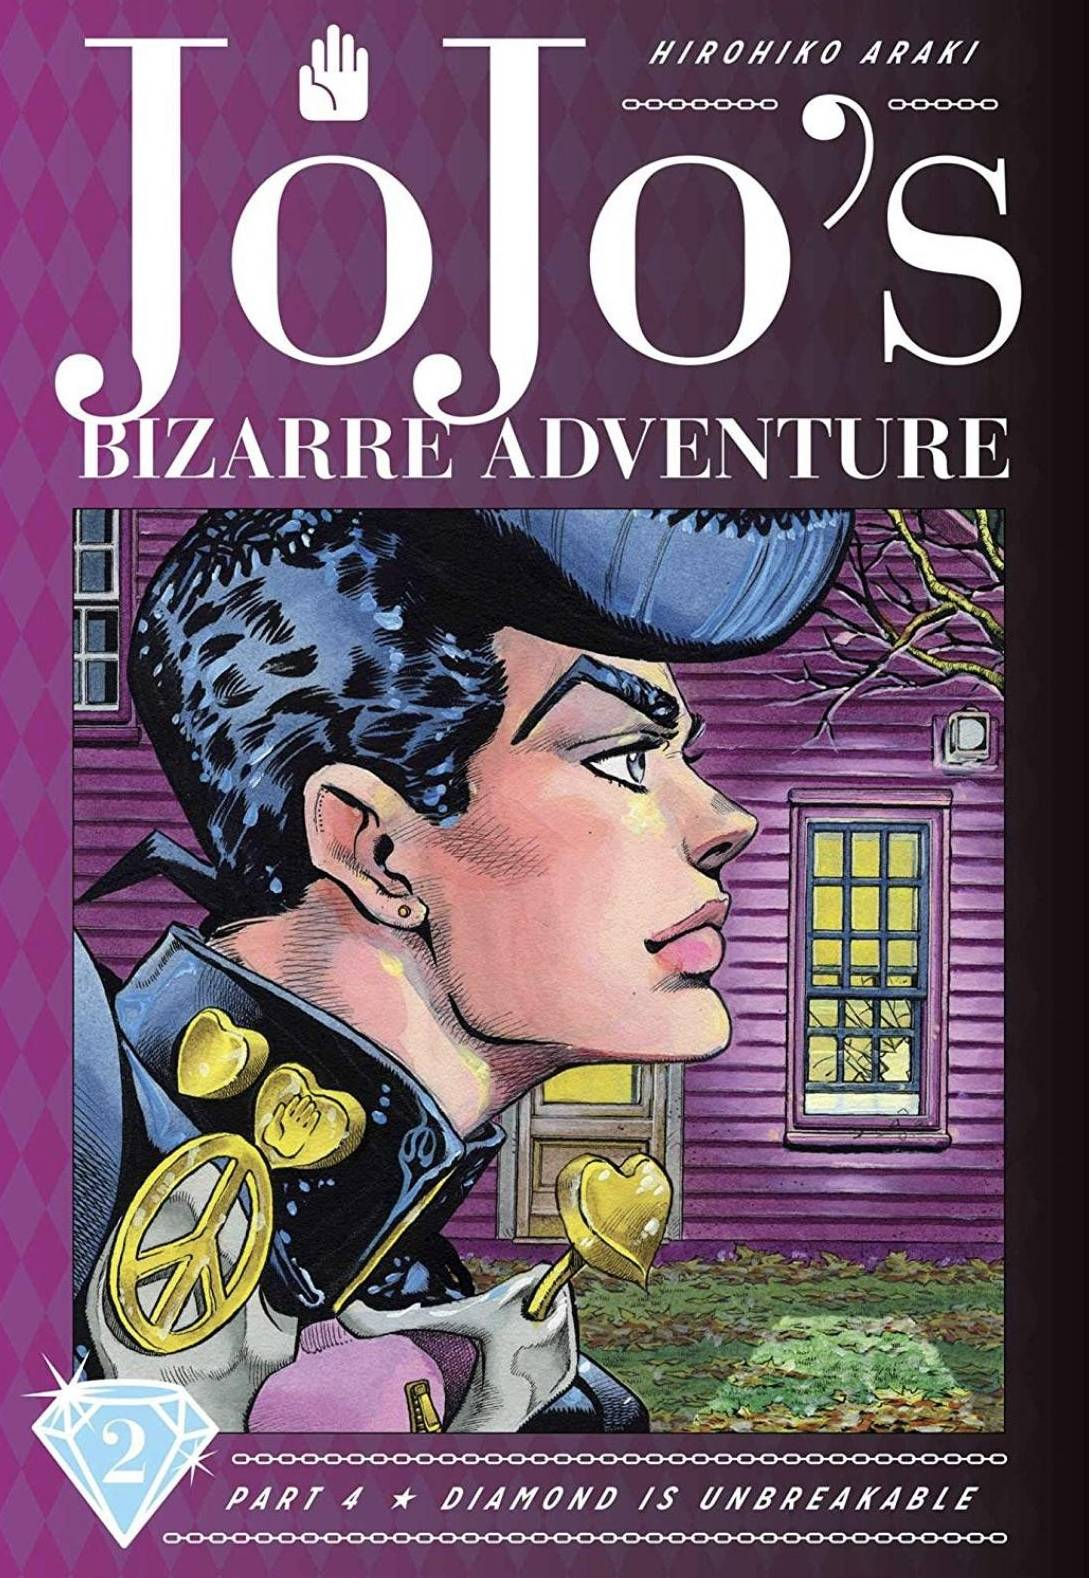 JoJo's Bizarre Adventure Part 4 Diamond is Unbreakable HC Vol 2